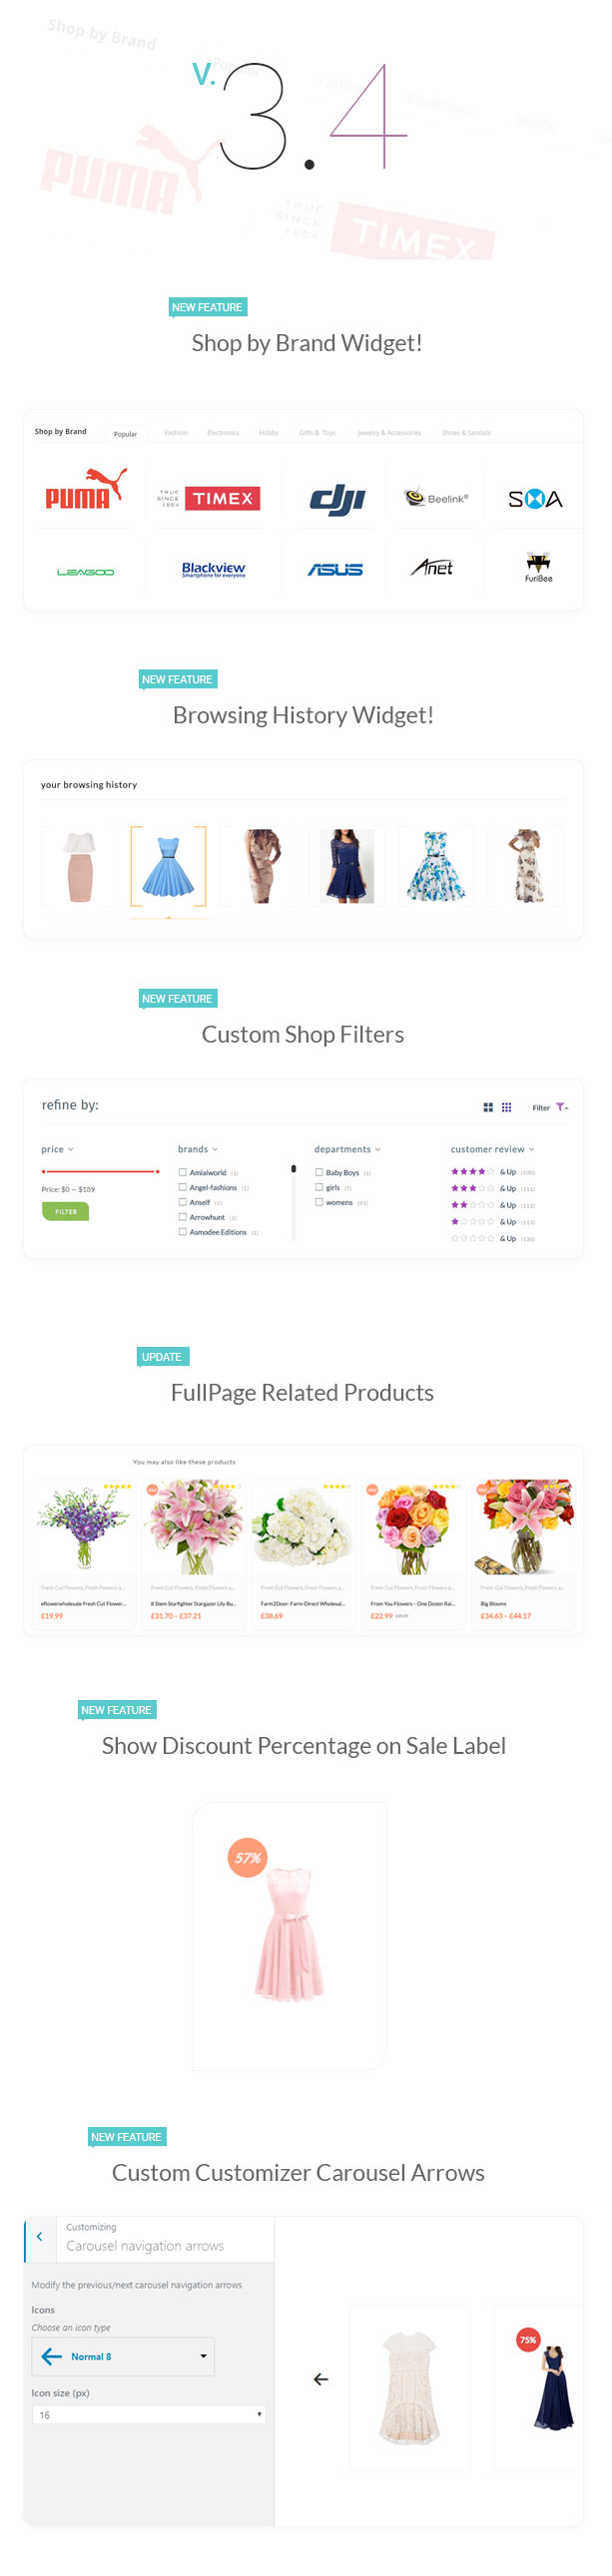 Kingdom - WooCommerce Amazon Affiliates Theme - 4